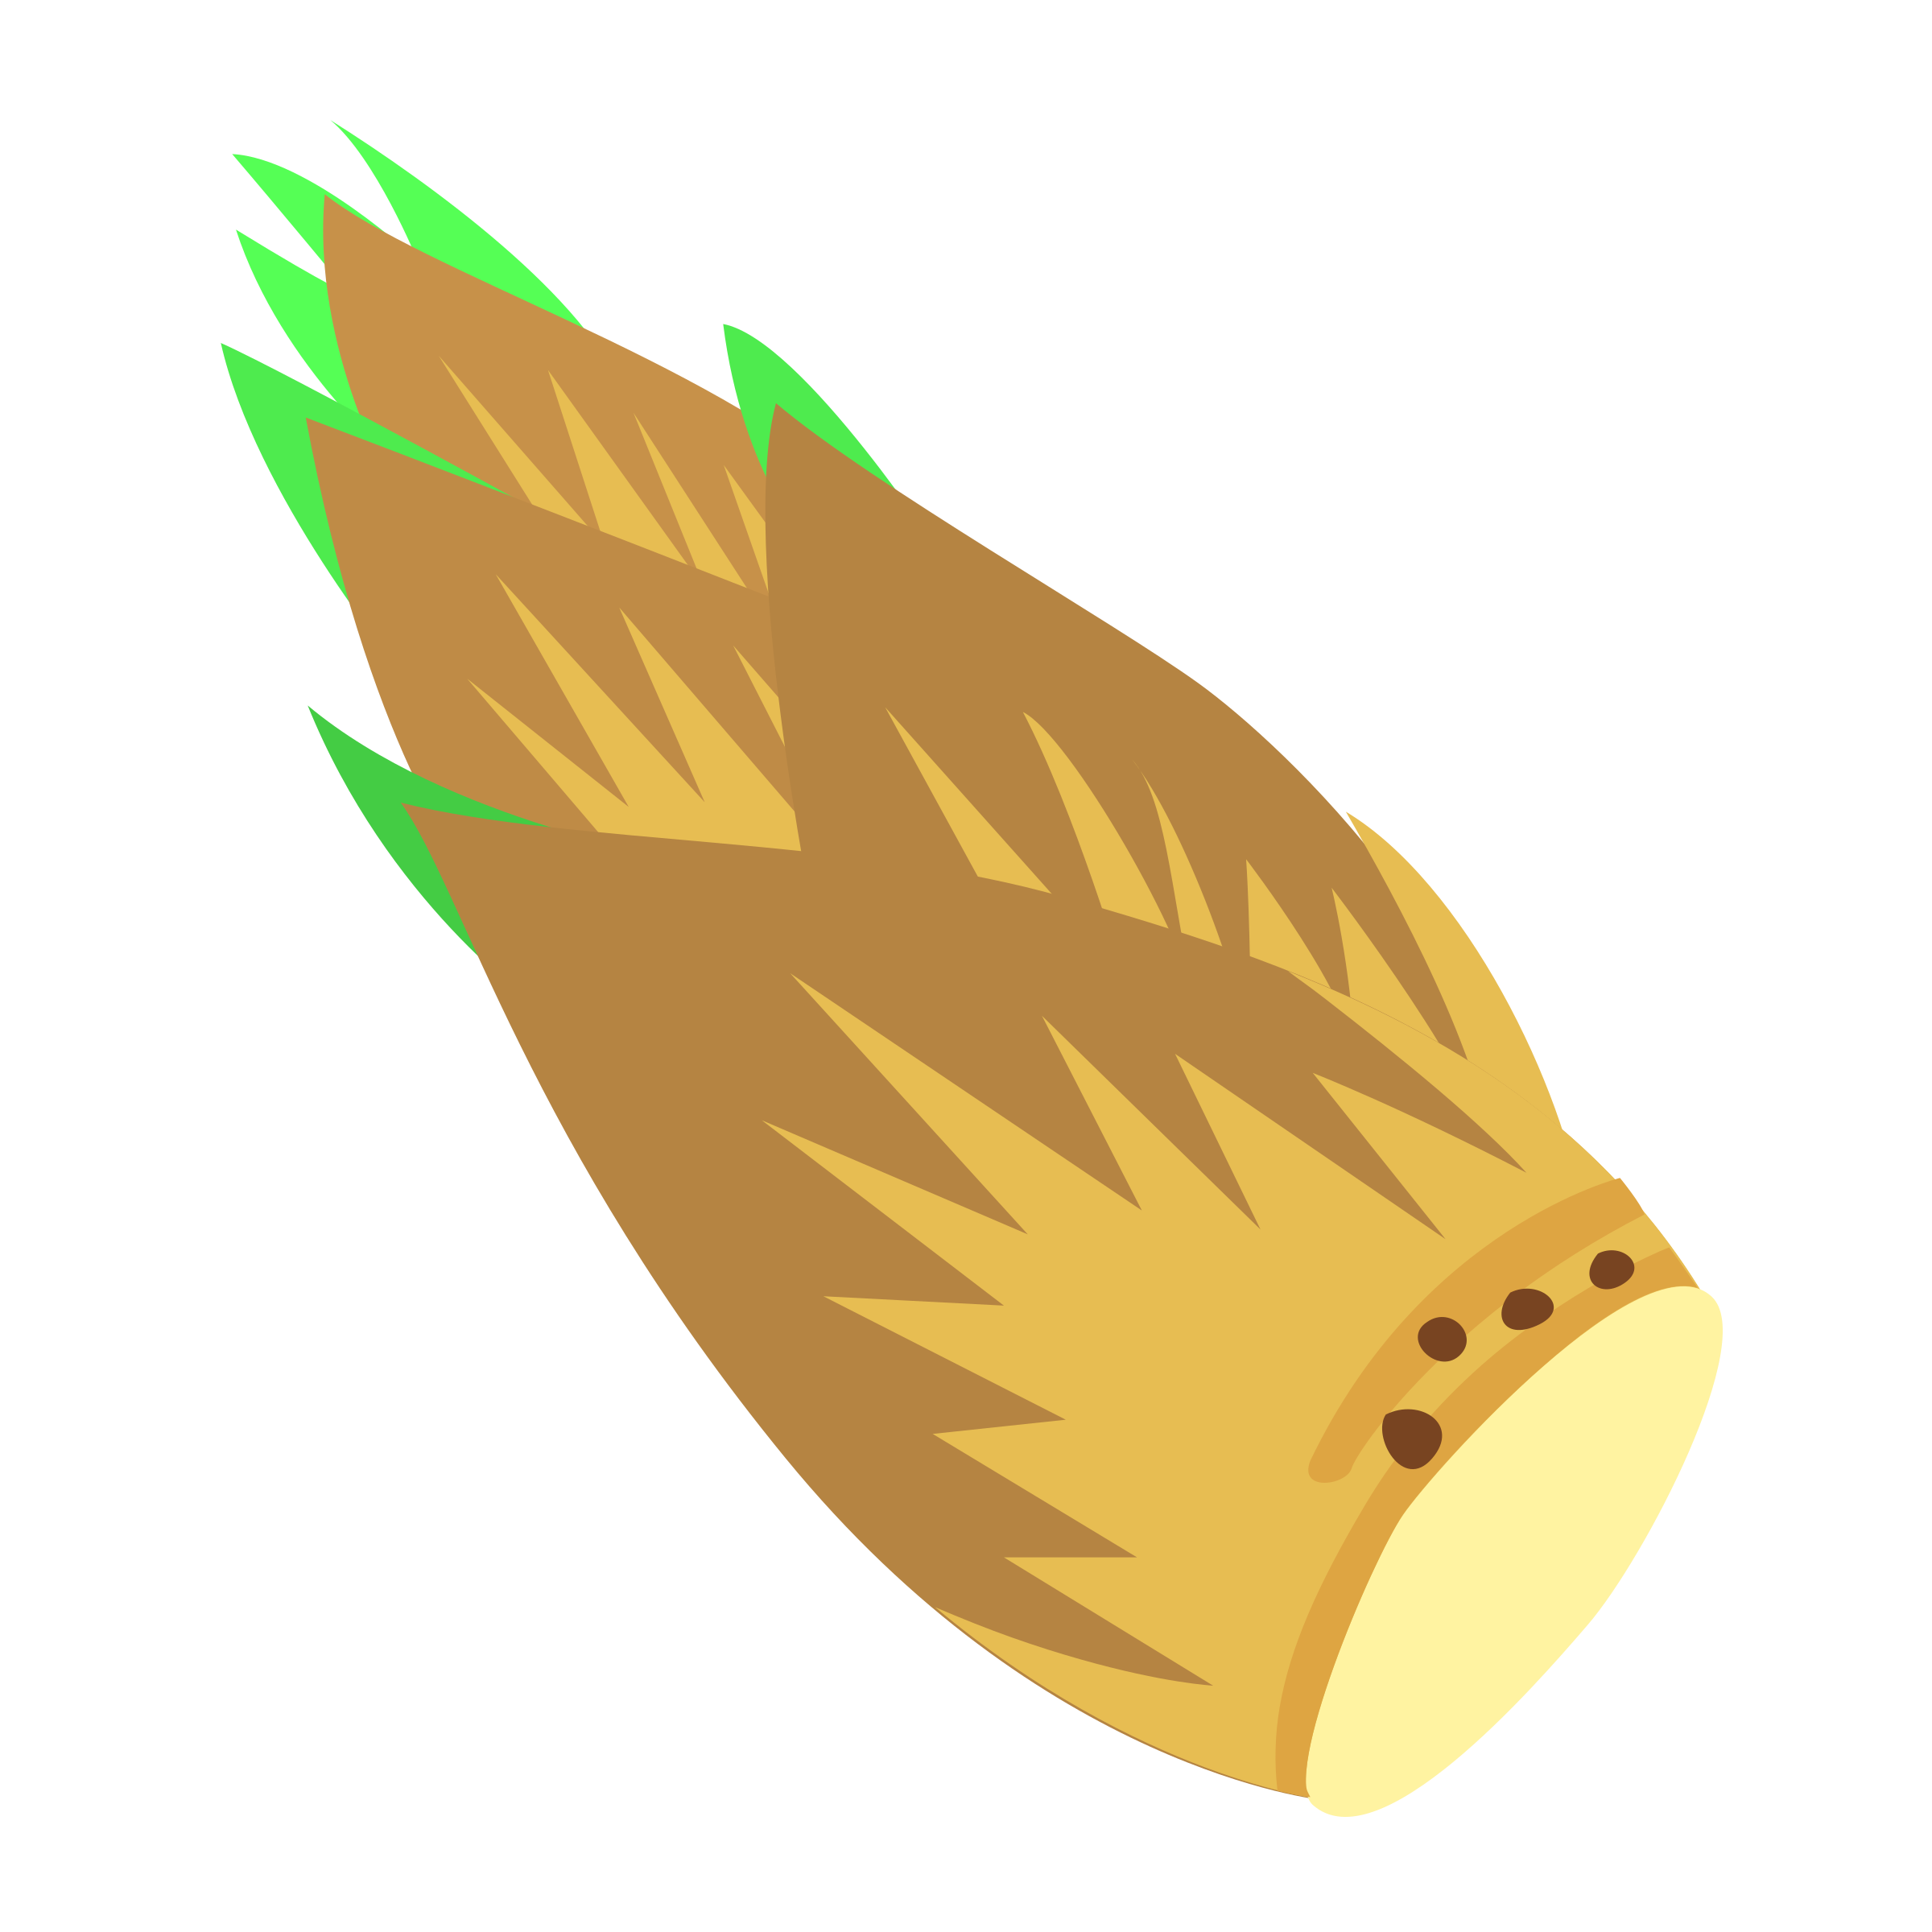 Bamboo shoots png. Shoot icons free and